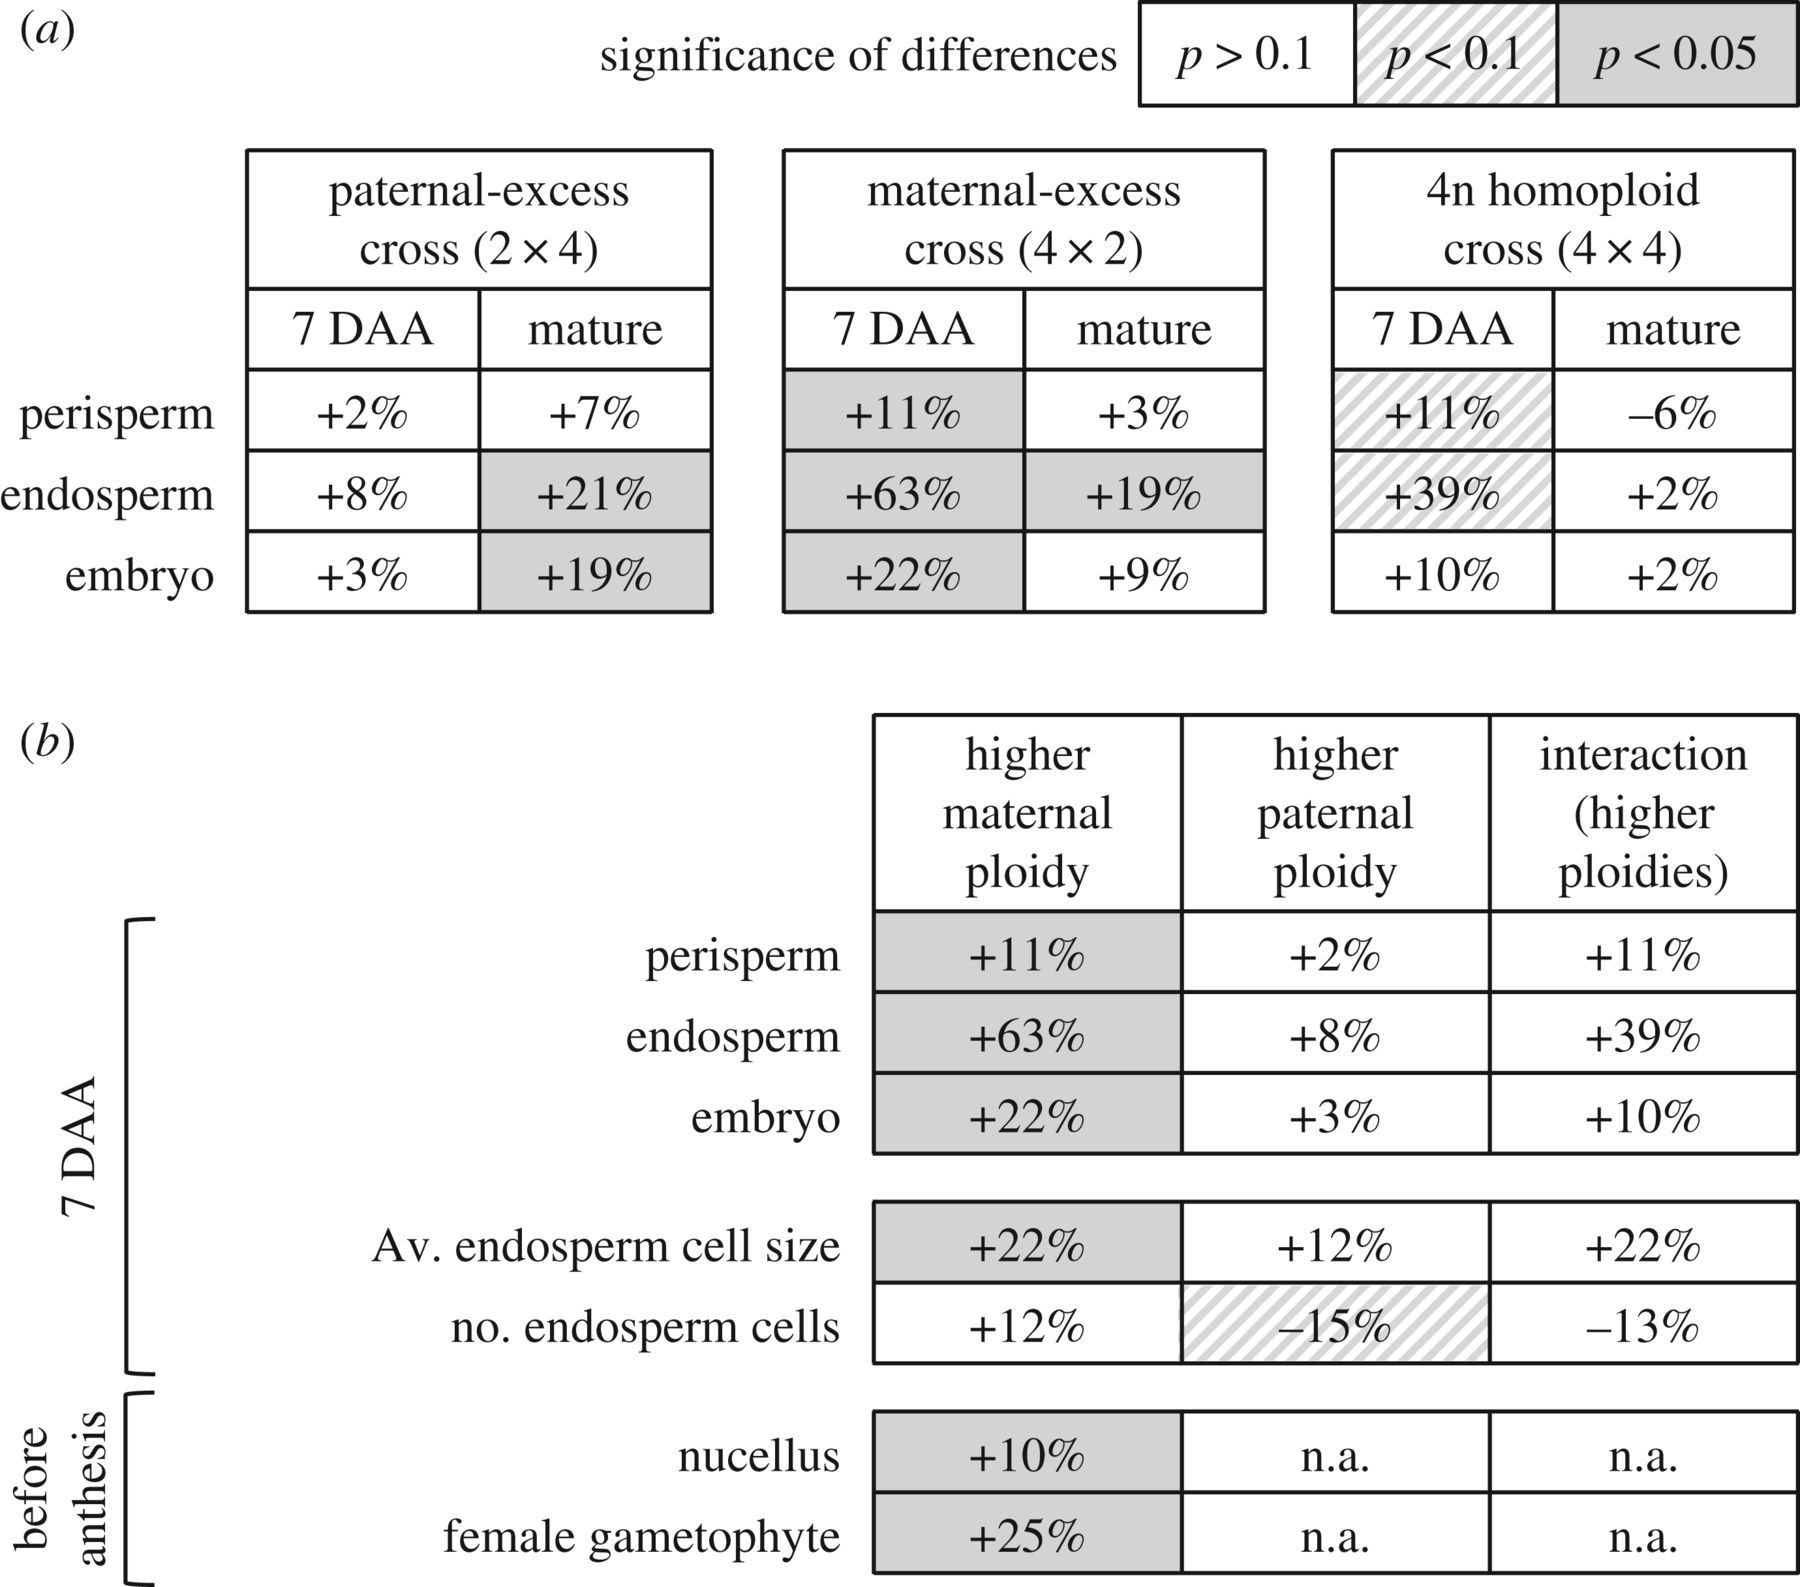 Evidence for parent-of-origin effects and interparental